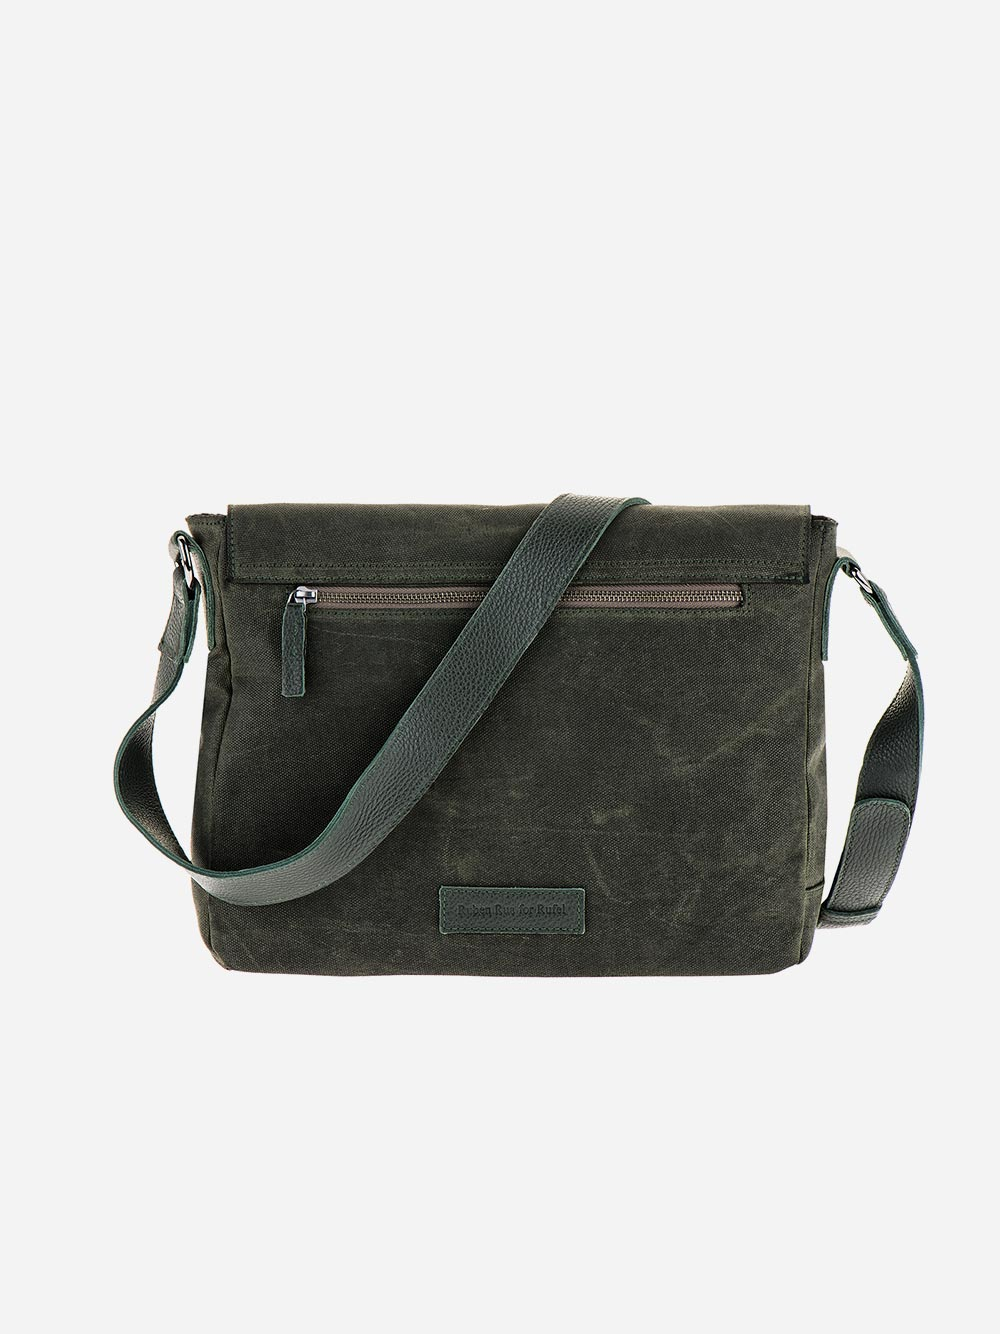 Green Nylon Messenger Bag